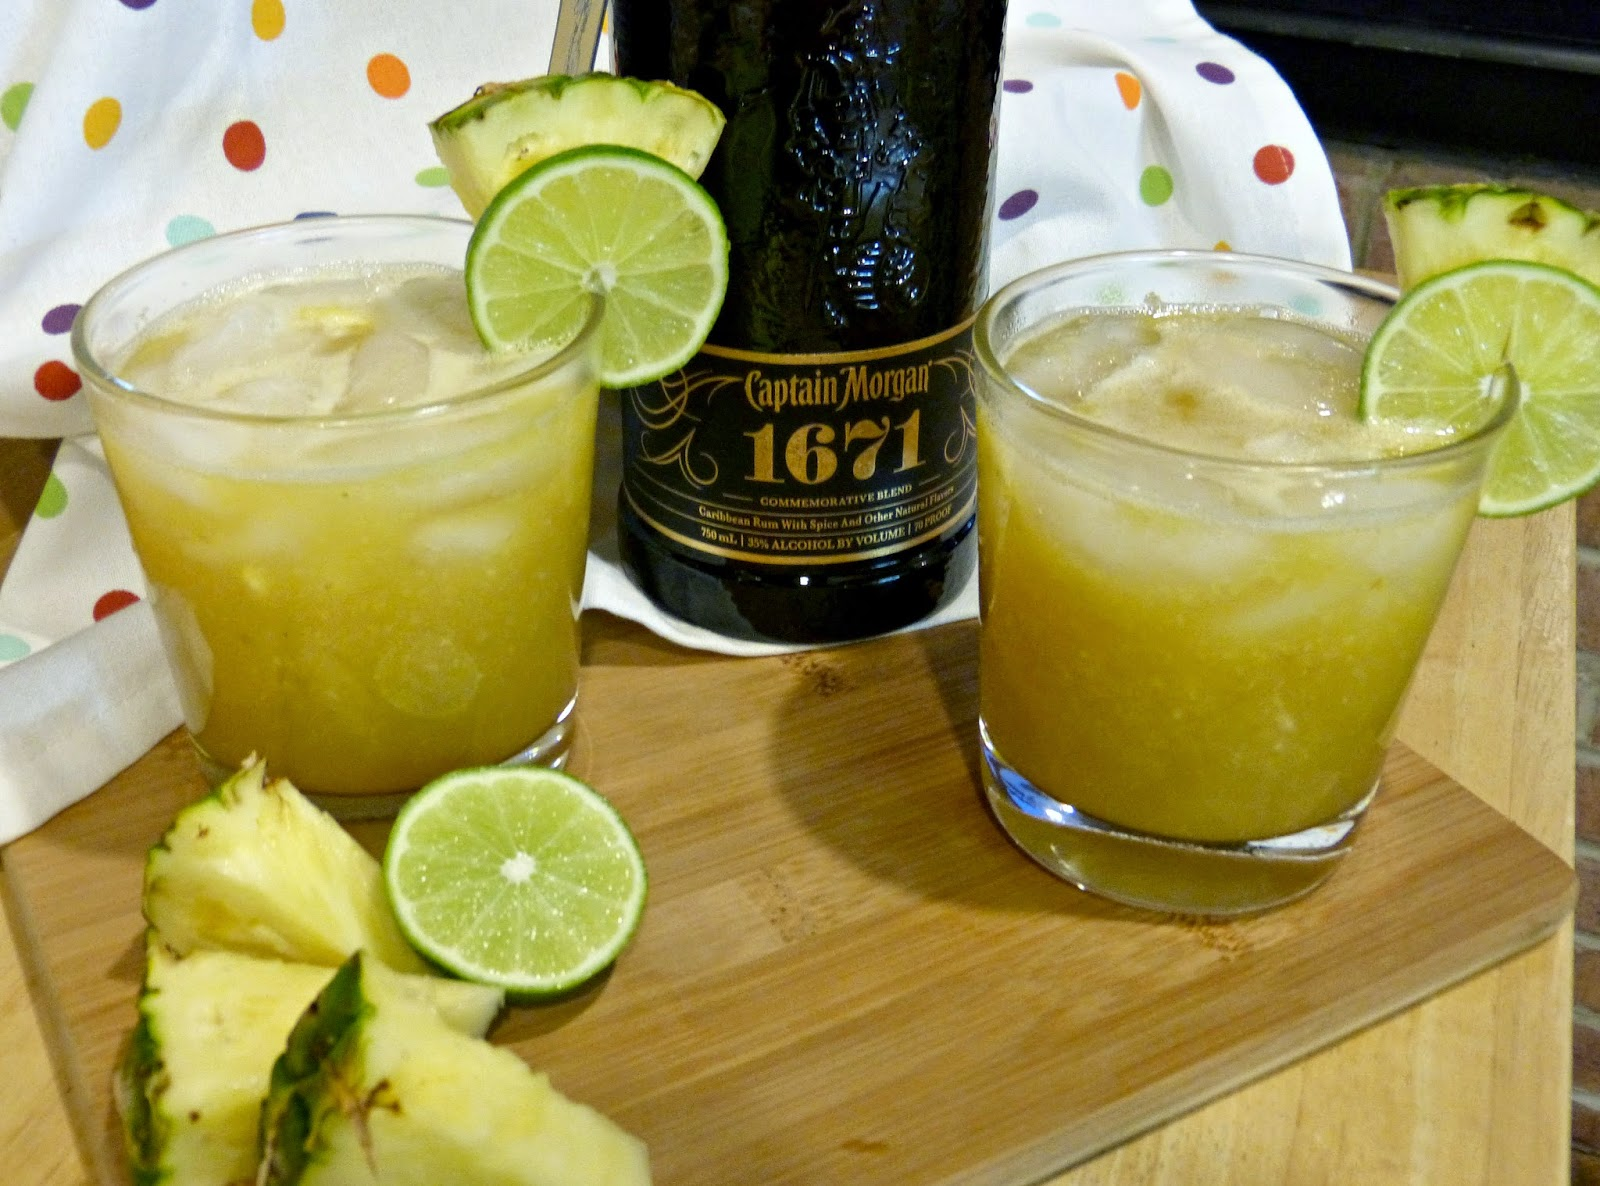 Pineapple Spiced Rum Punch with Captain Morgan 1671 Commemorative ...